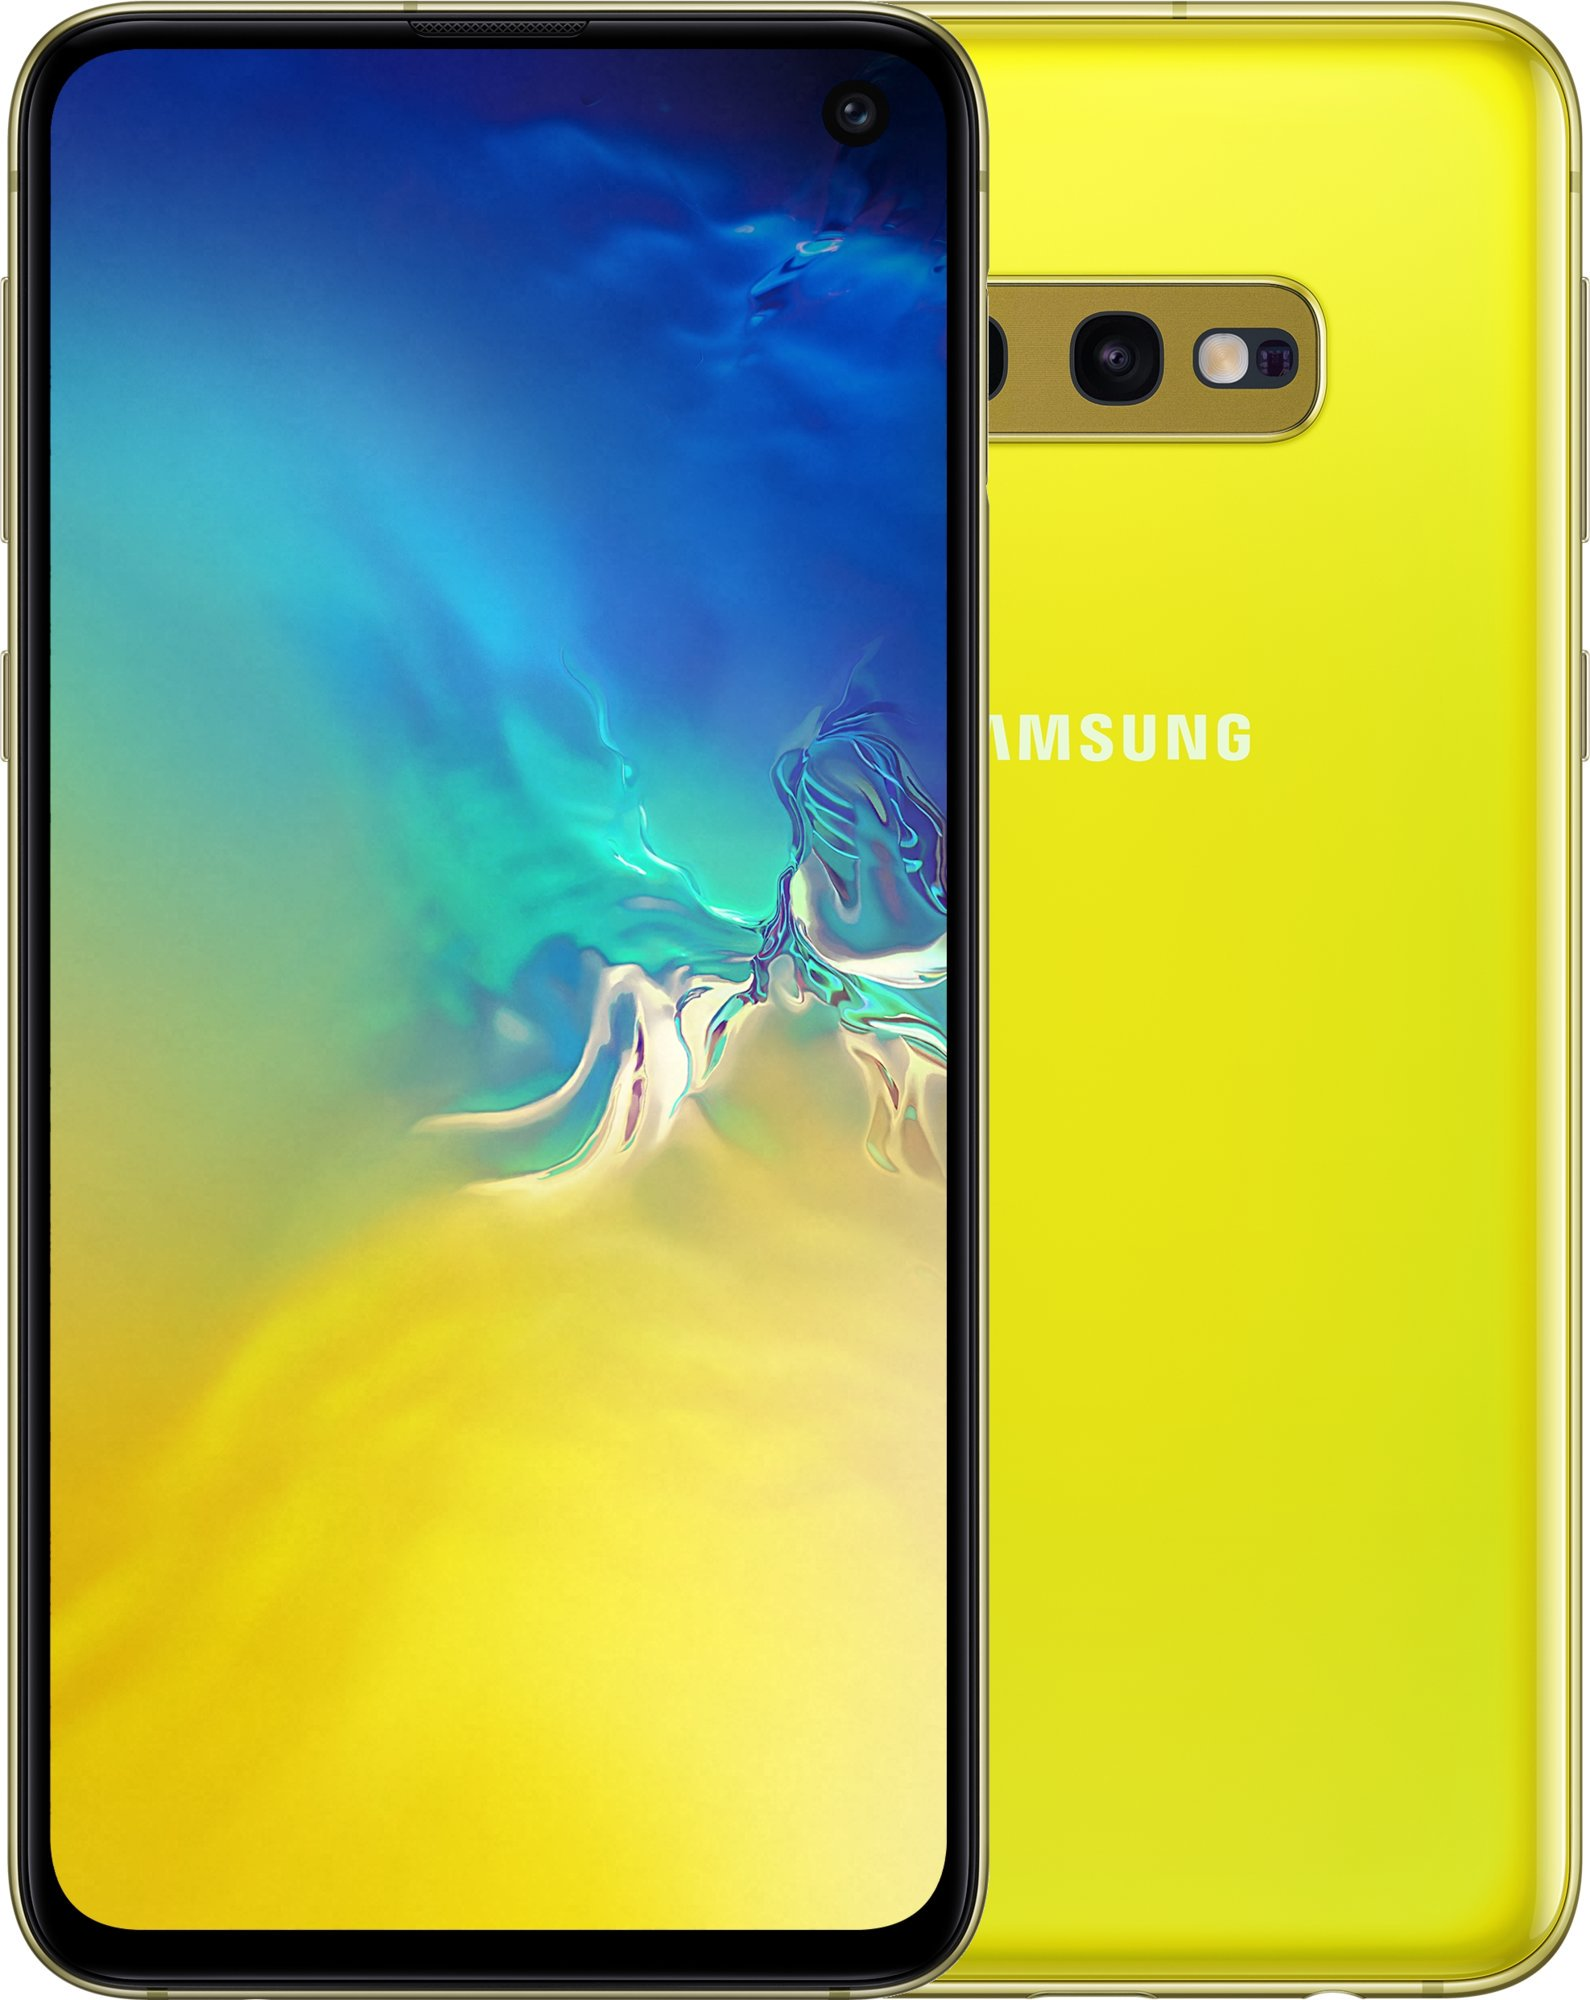 Samsung Galaxy S10e SM-G970 128GB Dual Sim, Yellow